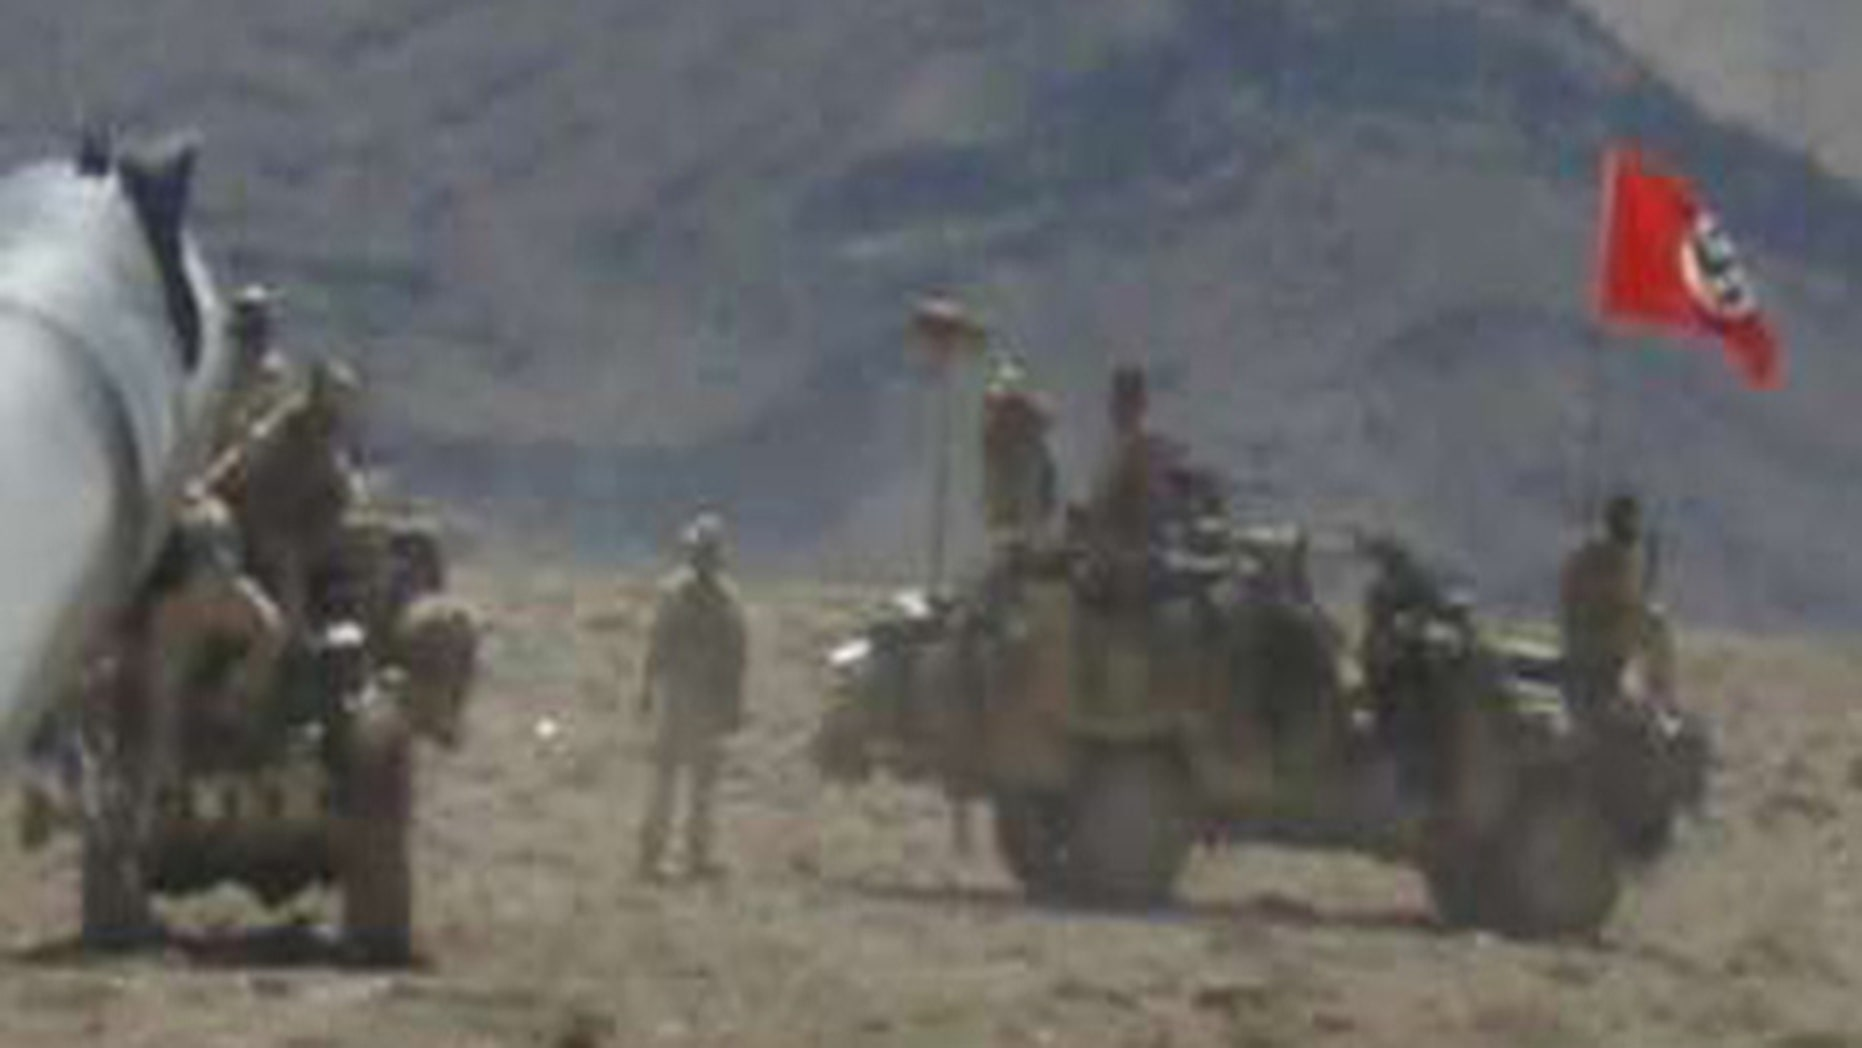 This photo showing Australian Special Forces troops flying a Nazi flag from a vehicle while on patrol in Afghanistan in 2007 has just become public.